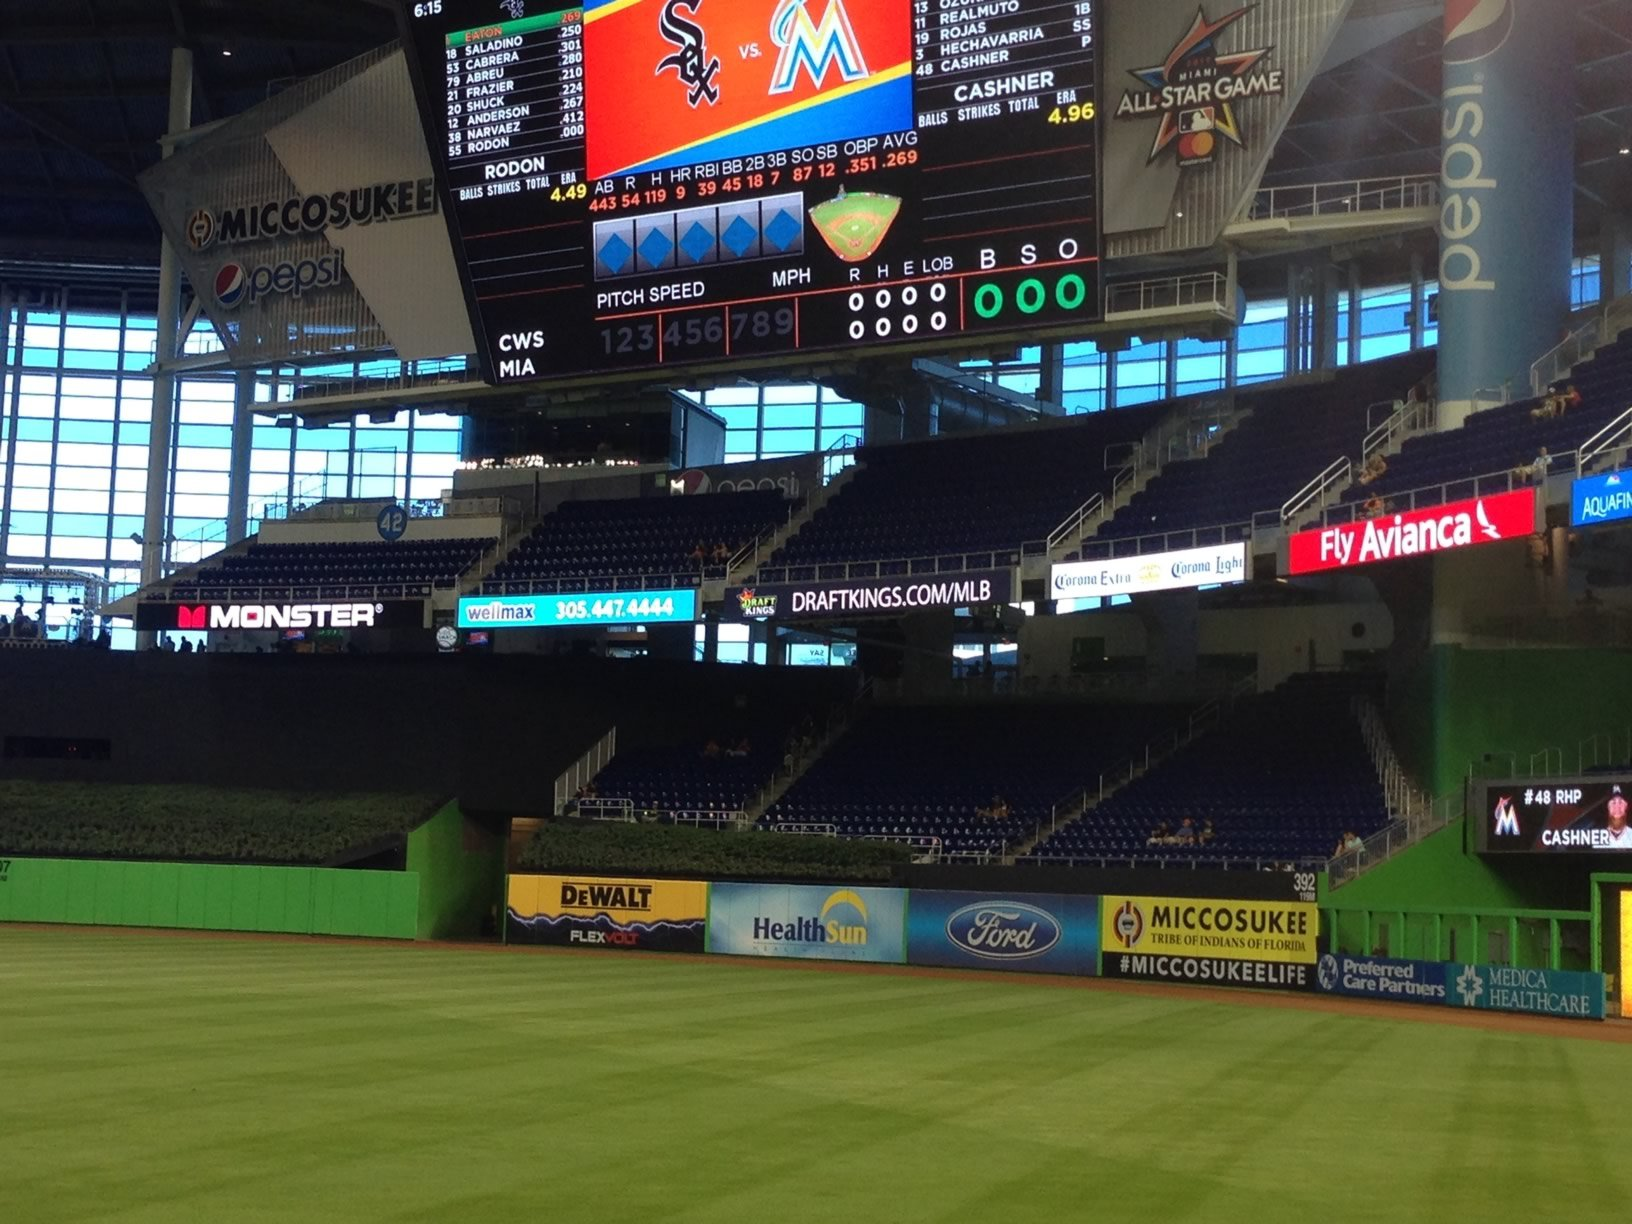 Marlins Park Home Run seats 134-137